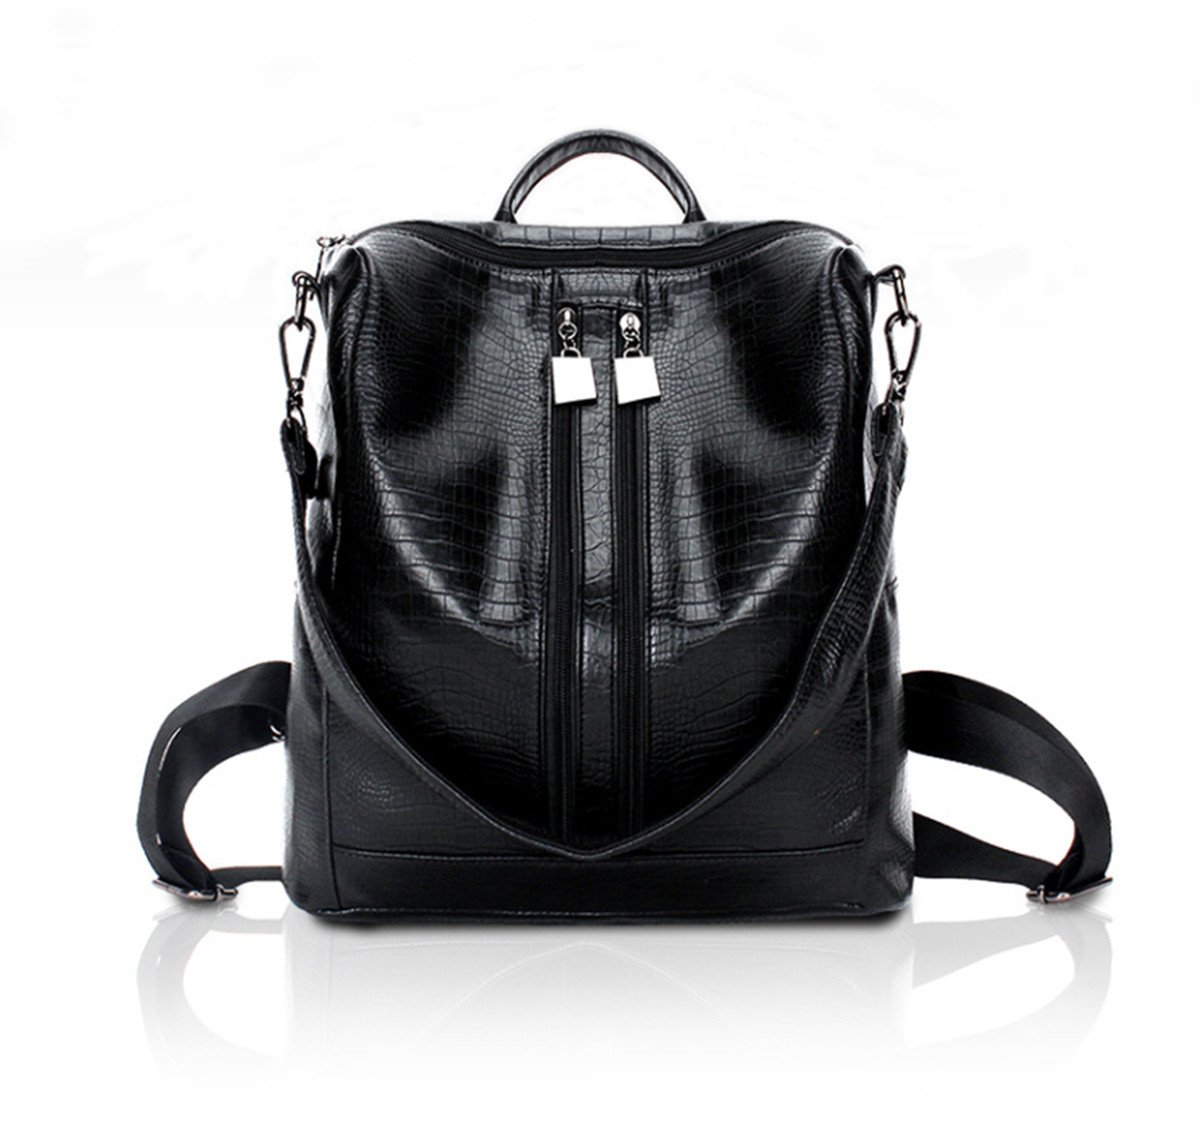 Fashion Backpack for Women Rucksack PU Leather Black Shoulder Bags Purses for Ladies Tote Bags